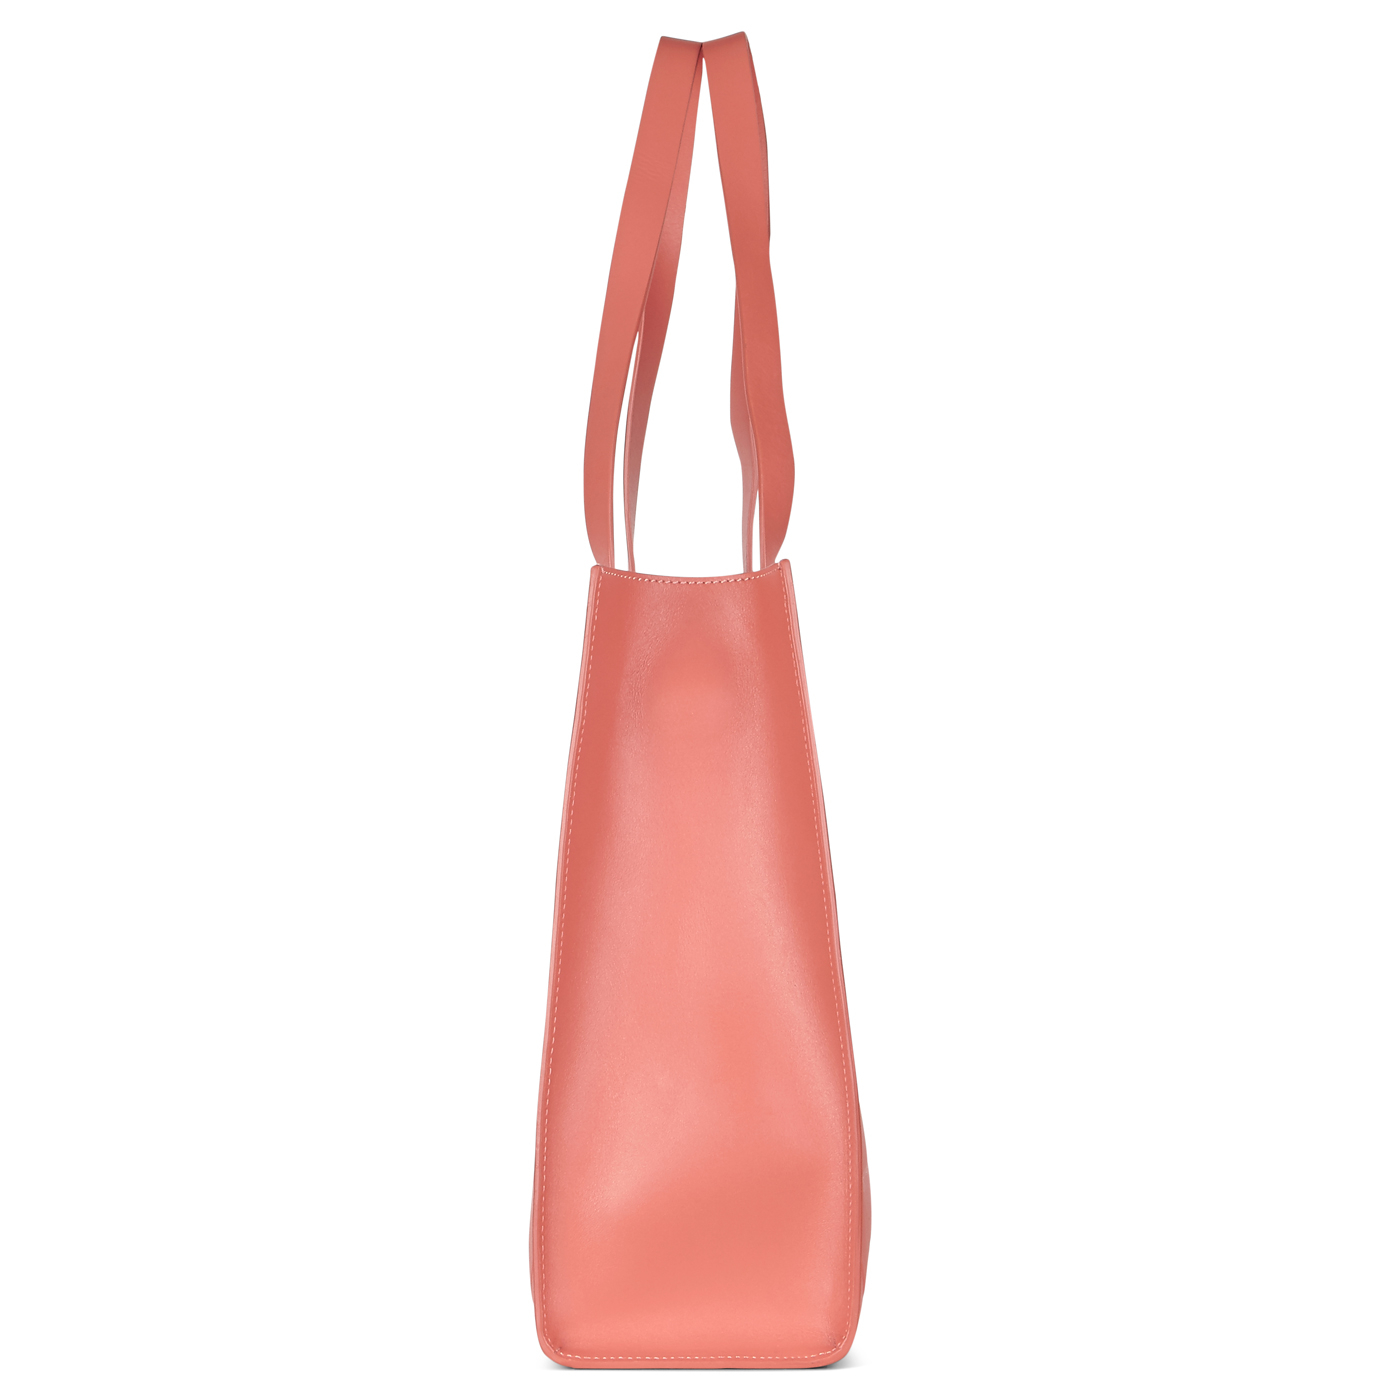 ECCO GEOMETRIK Shopper Bag